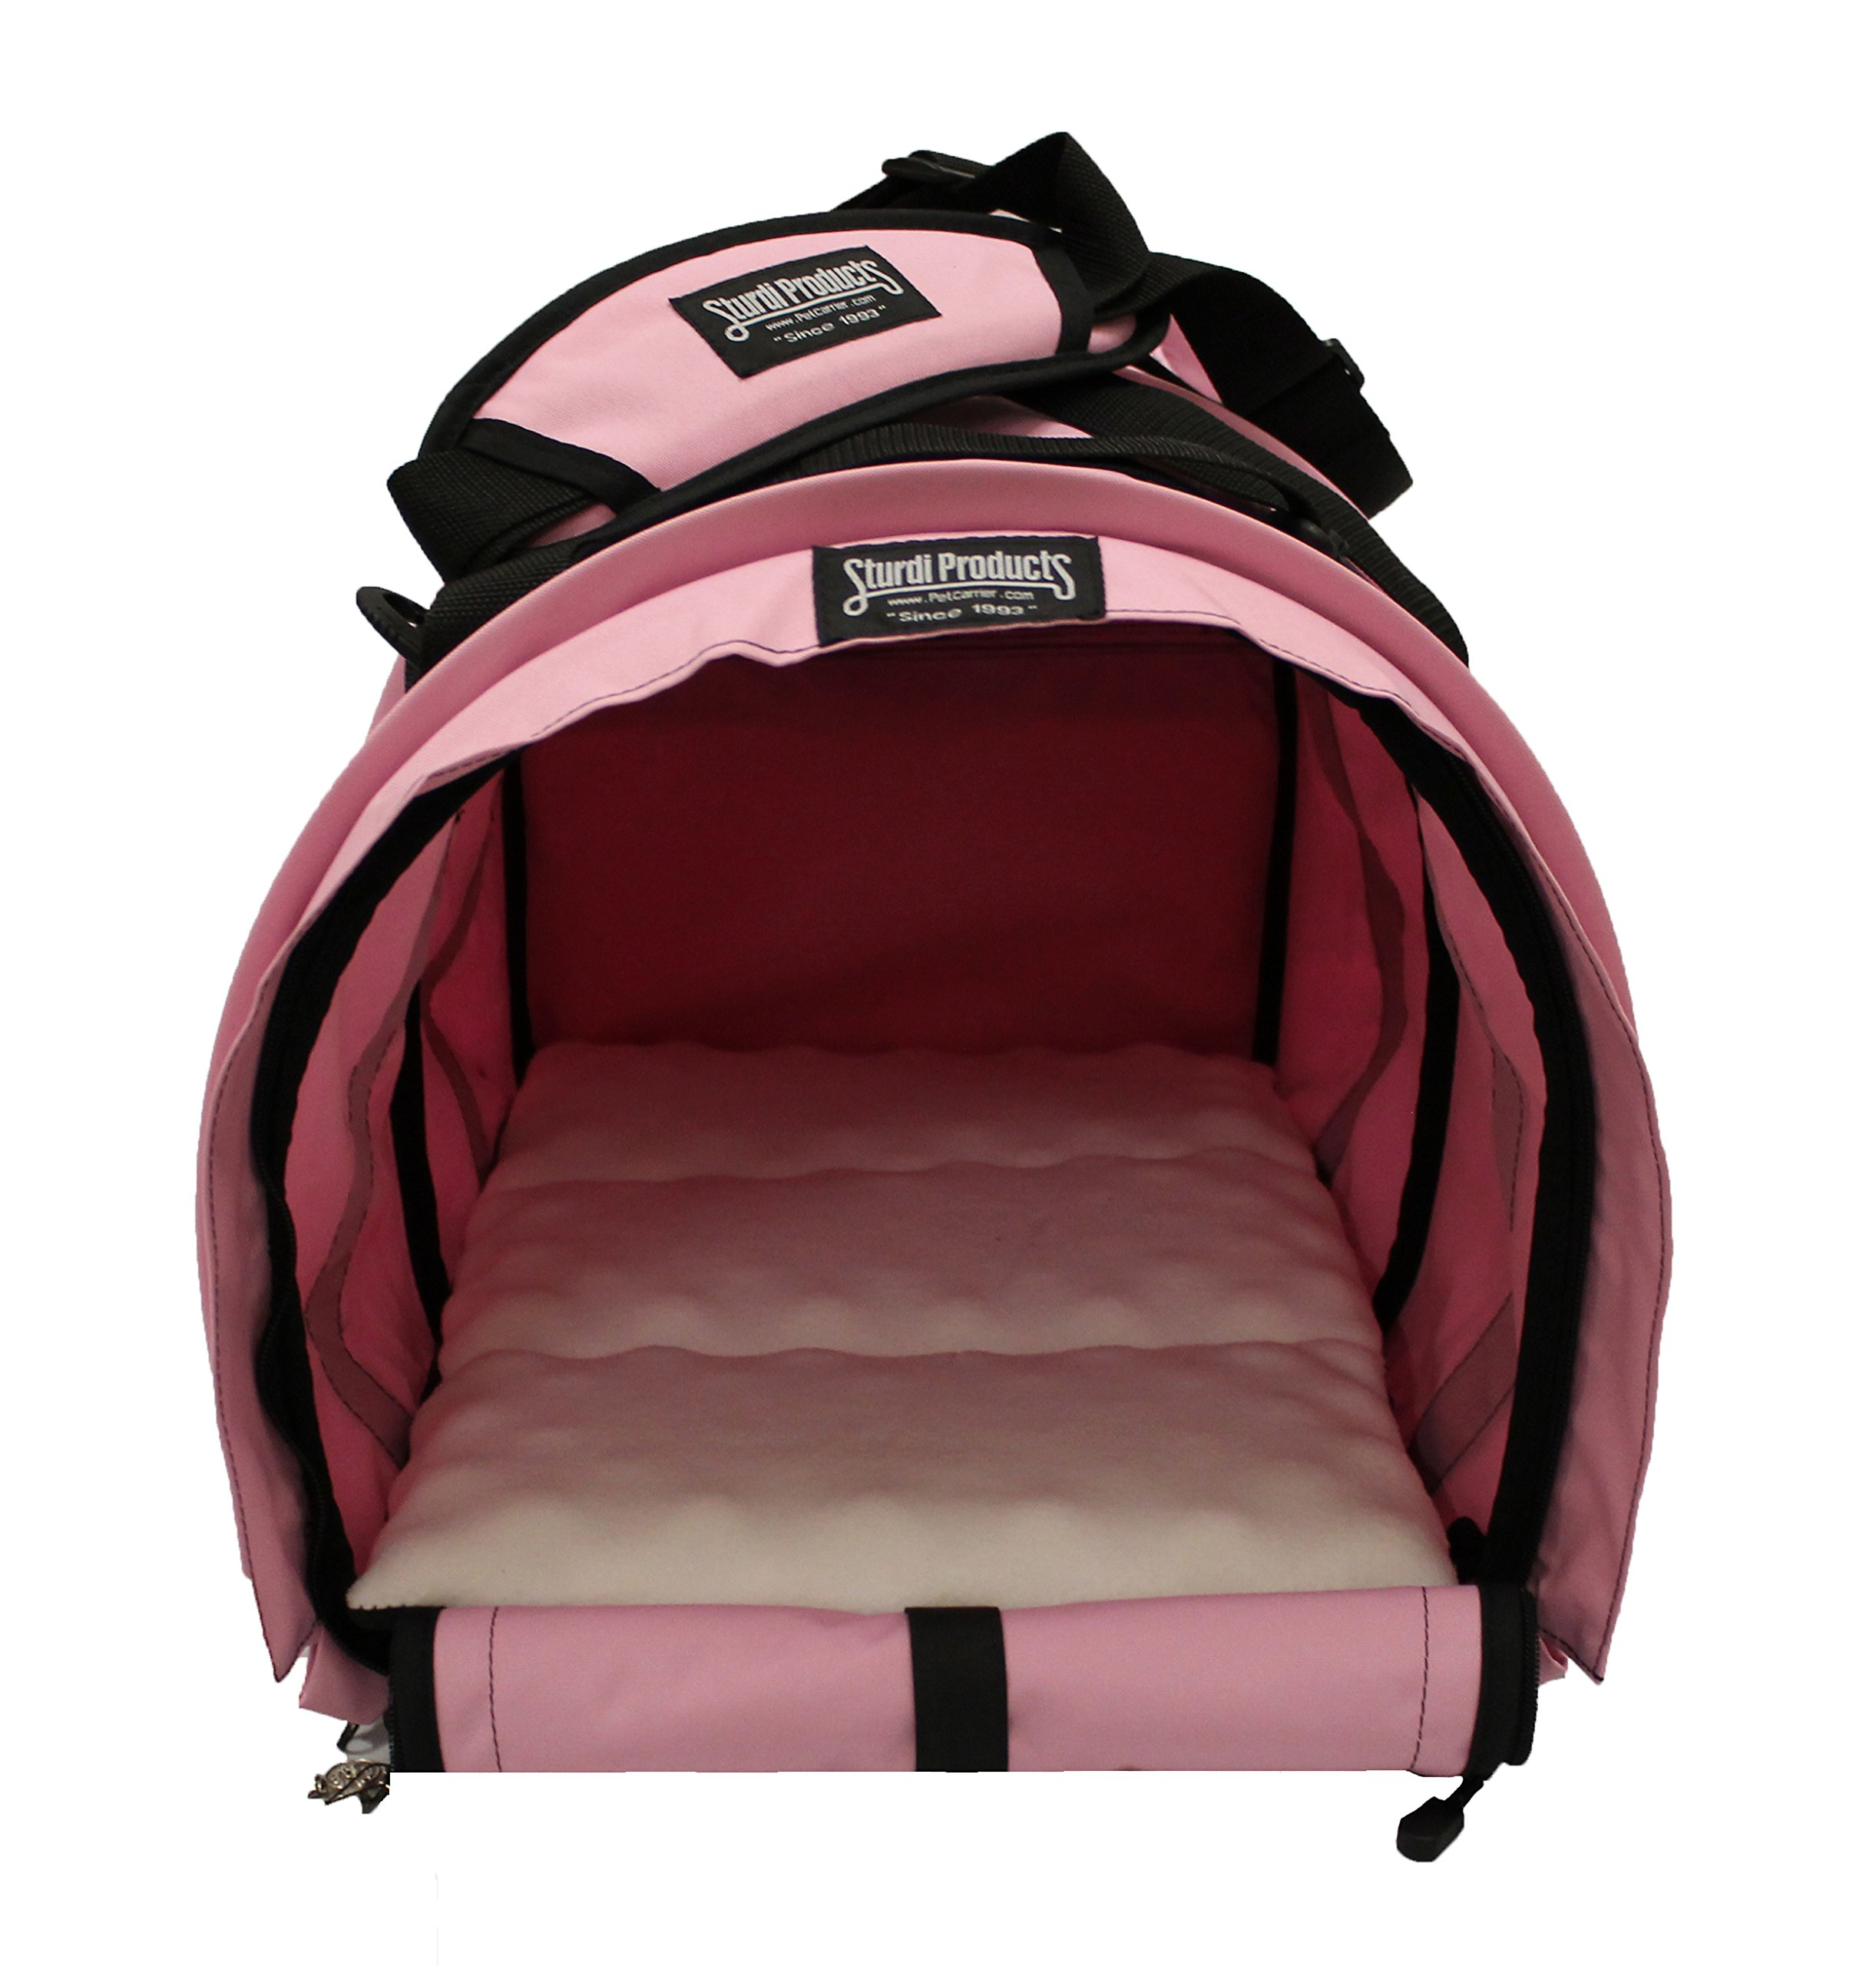 Sturdi Products SturdiBag Pet Carrier, X-Large, Soft Pink